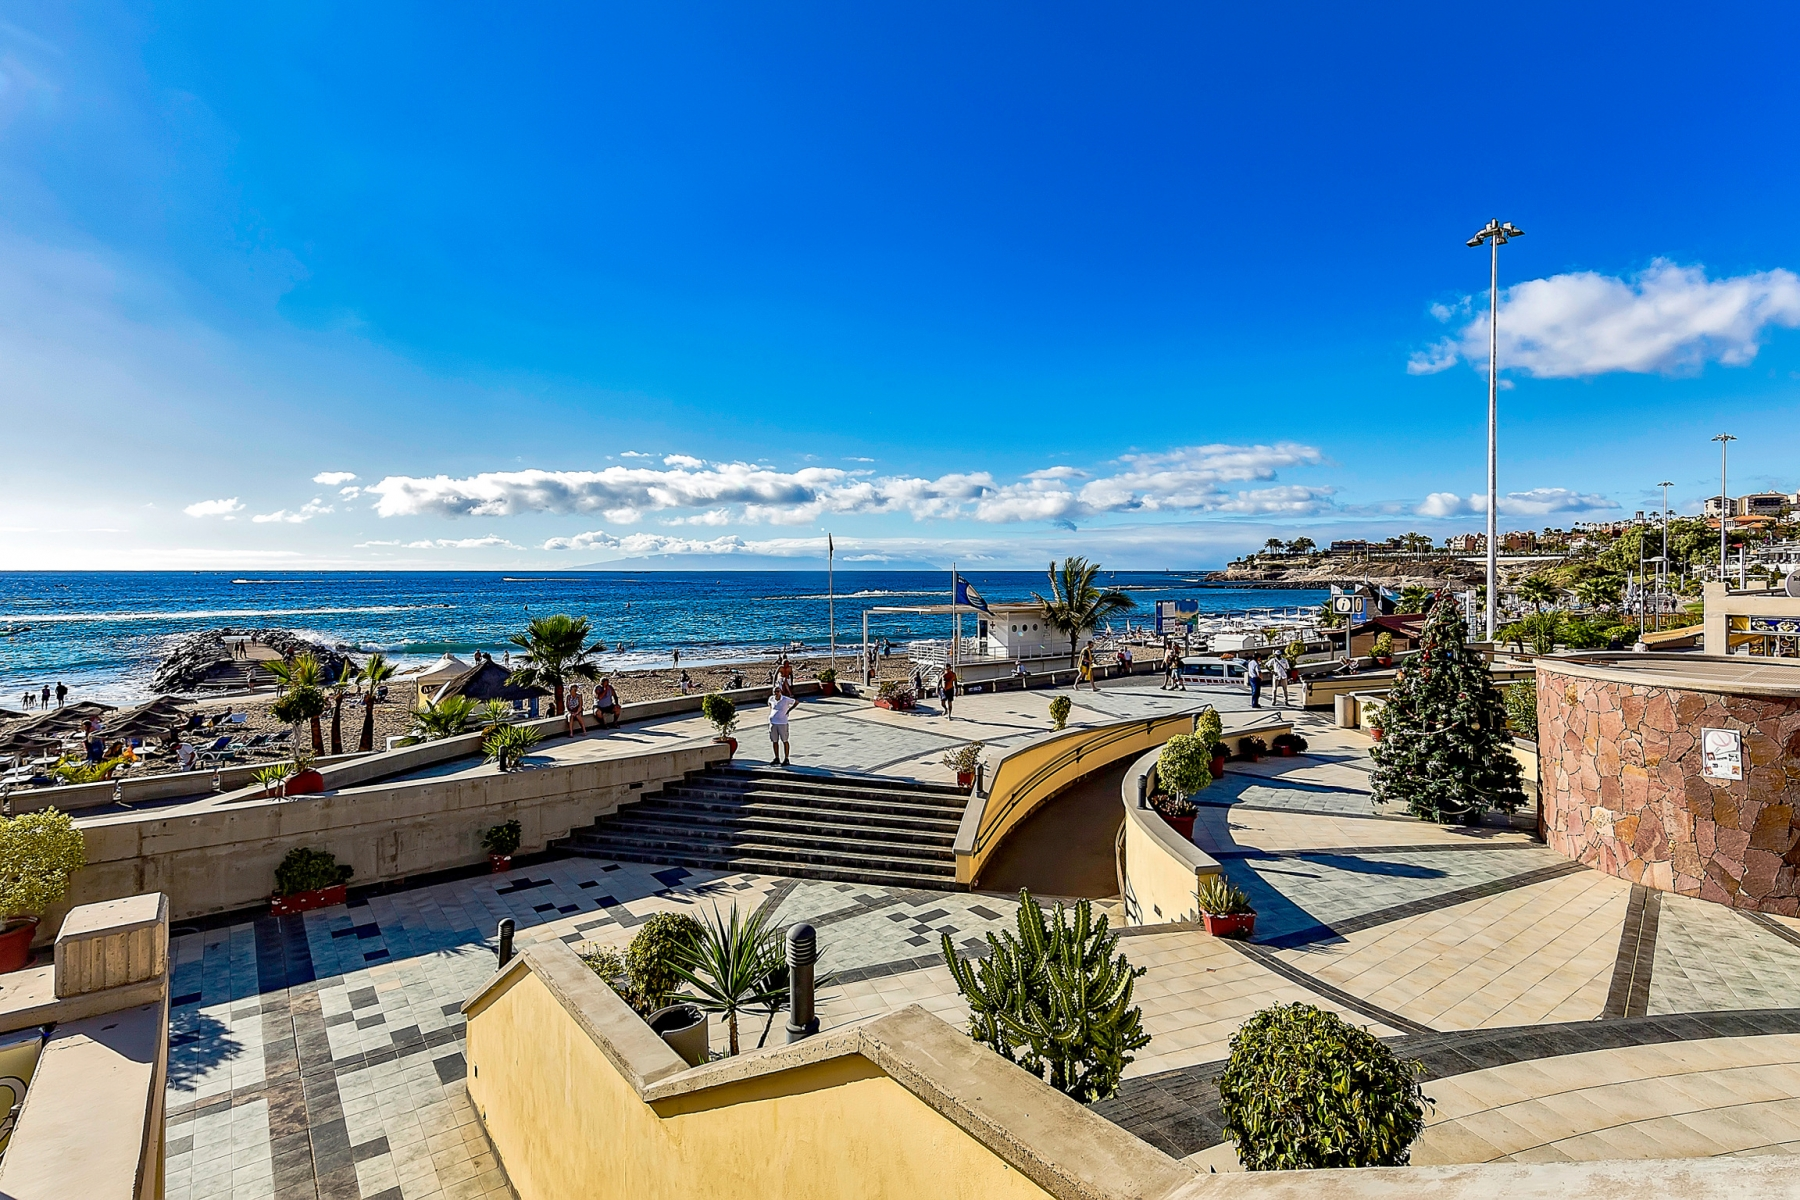 Properties for Sale in Tenerife, Canary Islands, Spain | SylkWayStar Real Estate. 1 bedroom apartment Yucca Park. Image-22609